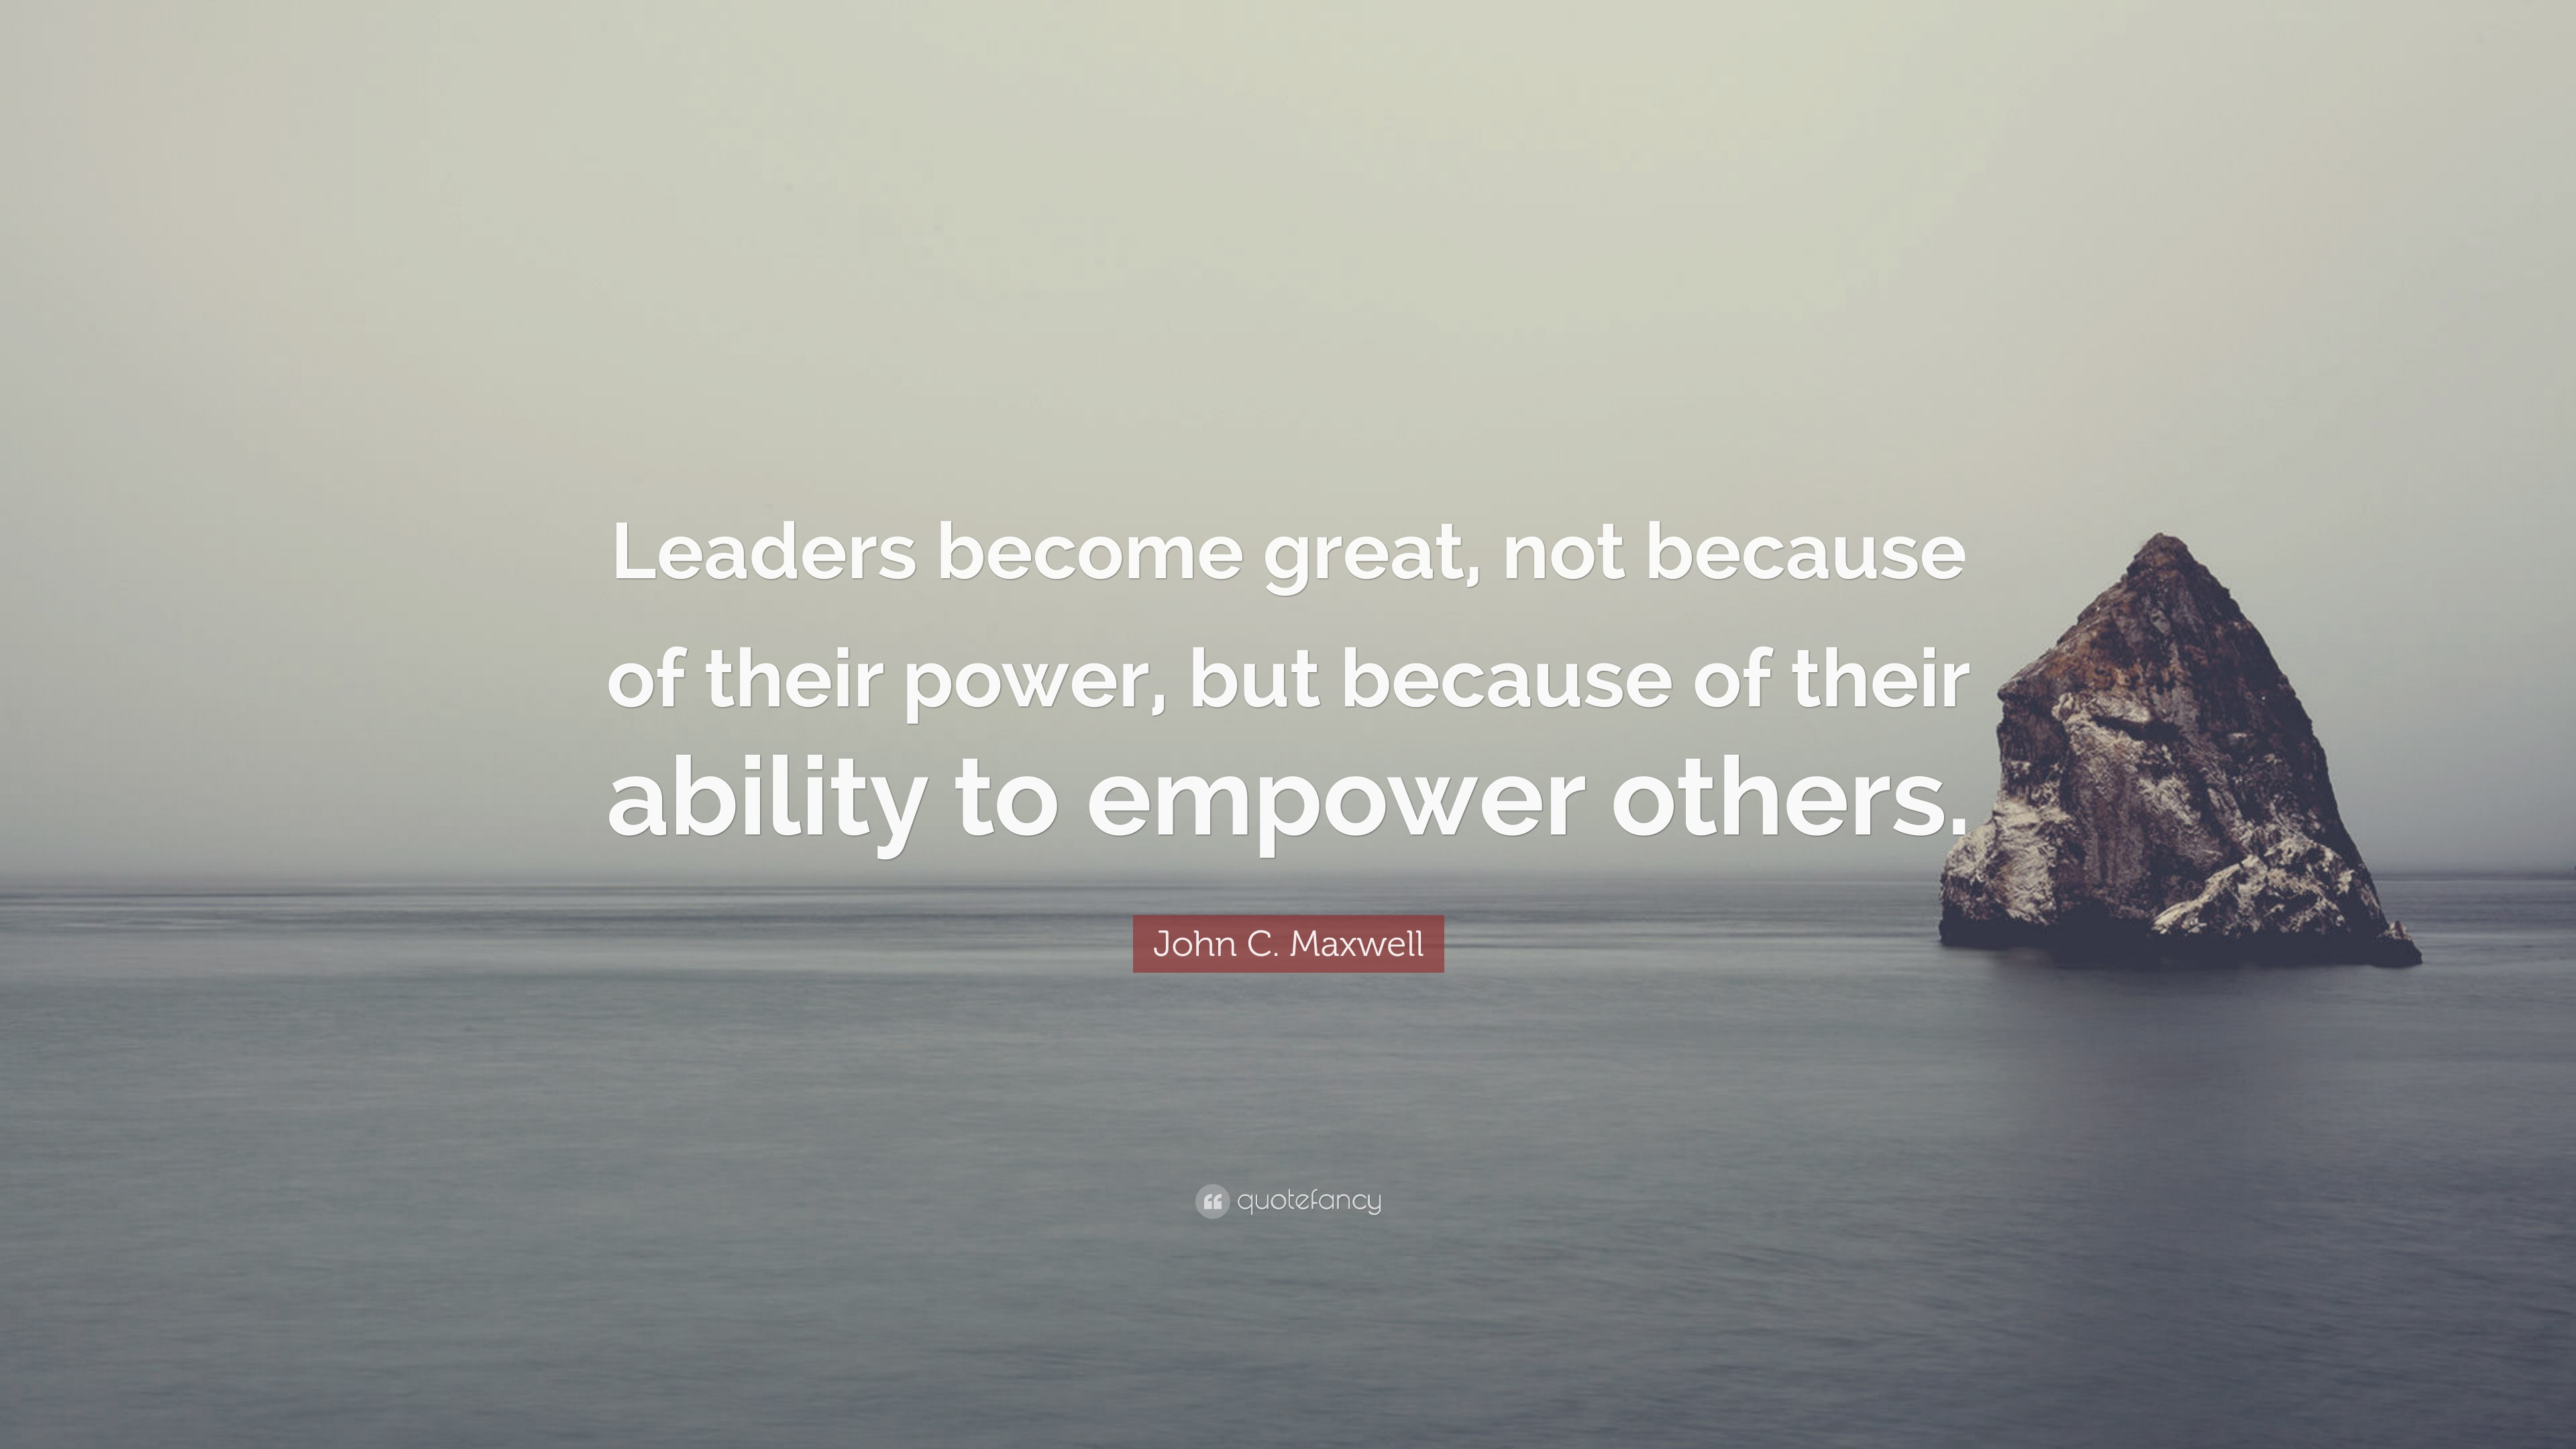 John C Maxwell Quote Leaders Become Great Not Because Of Their